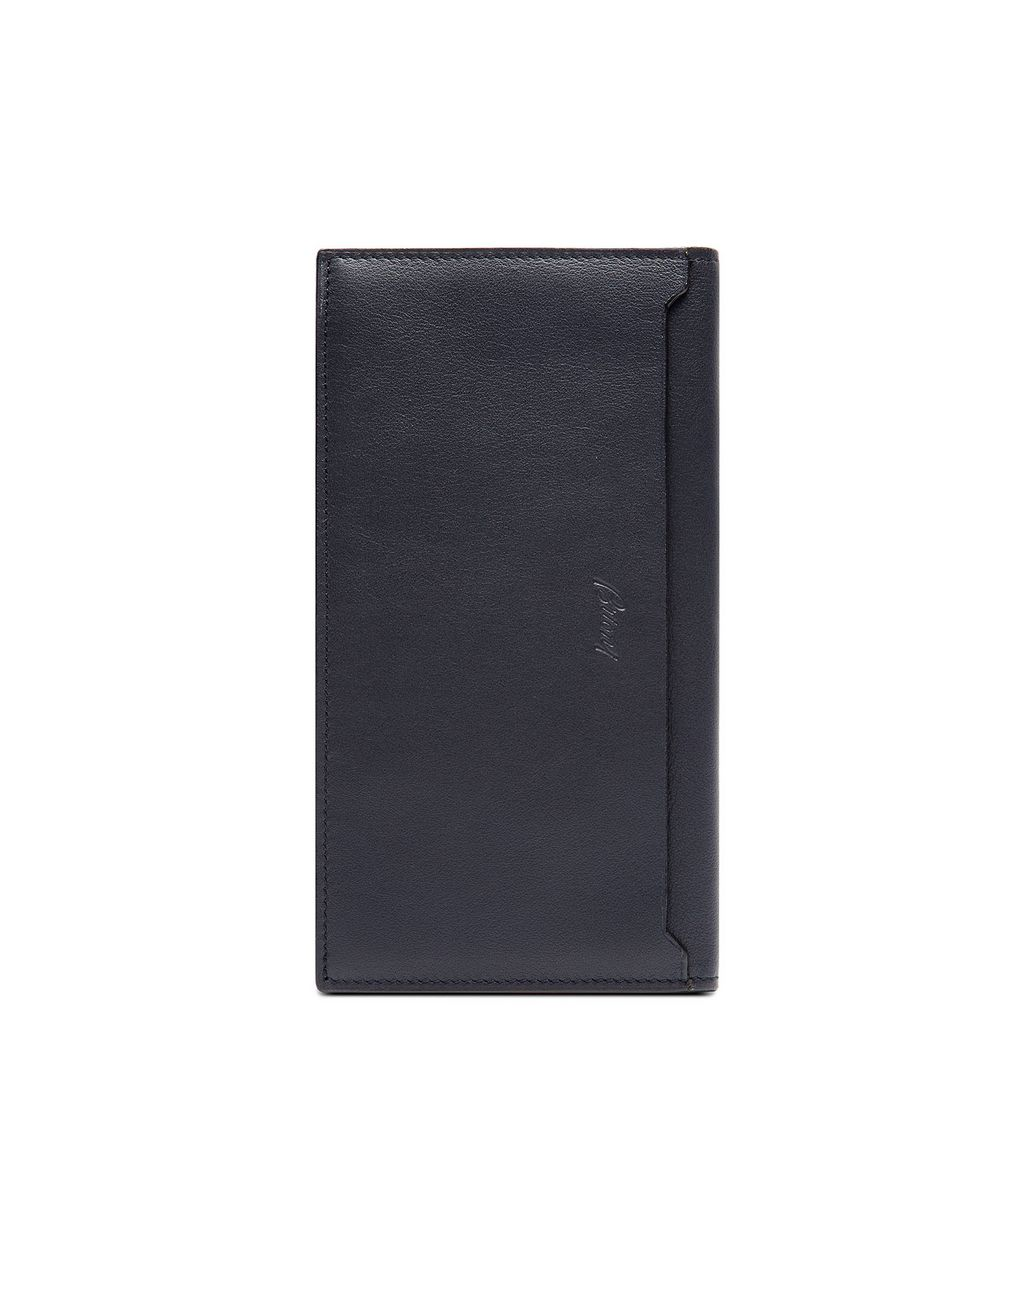 BRIONI Blue and Black Continental Wallet in Smooth Calfskin Leather Goods U r